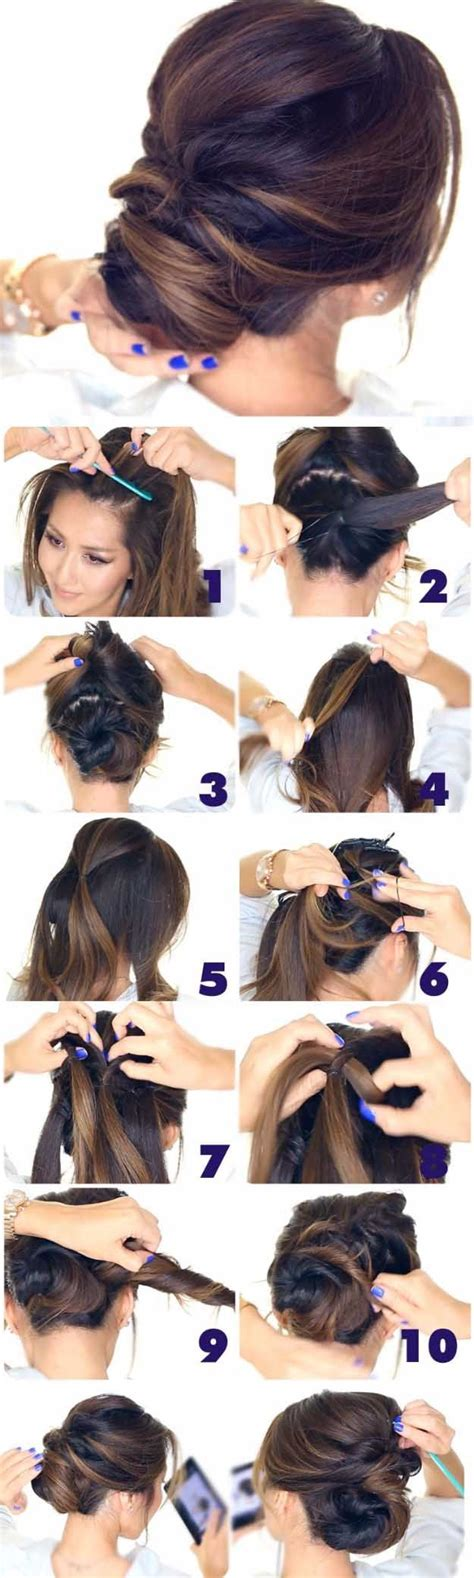 Wedding Updo Hairstyles For Faces by 17 Best Ideas About Hairstyles On